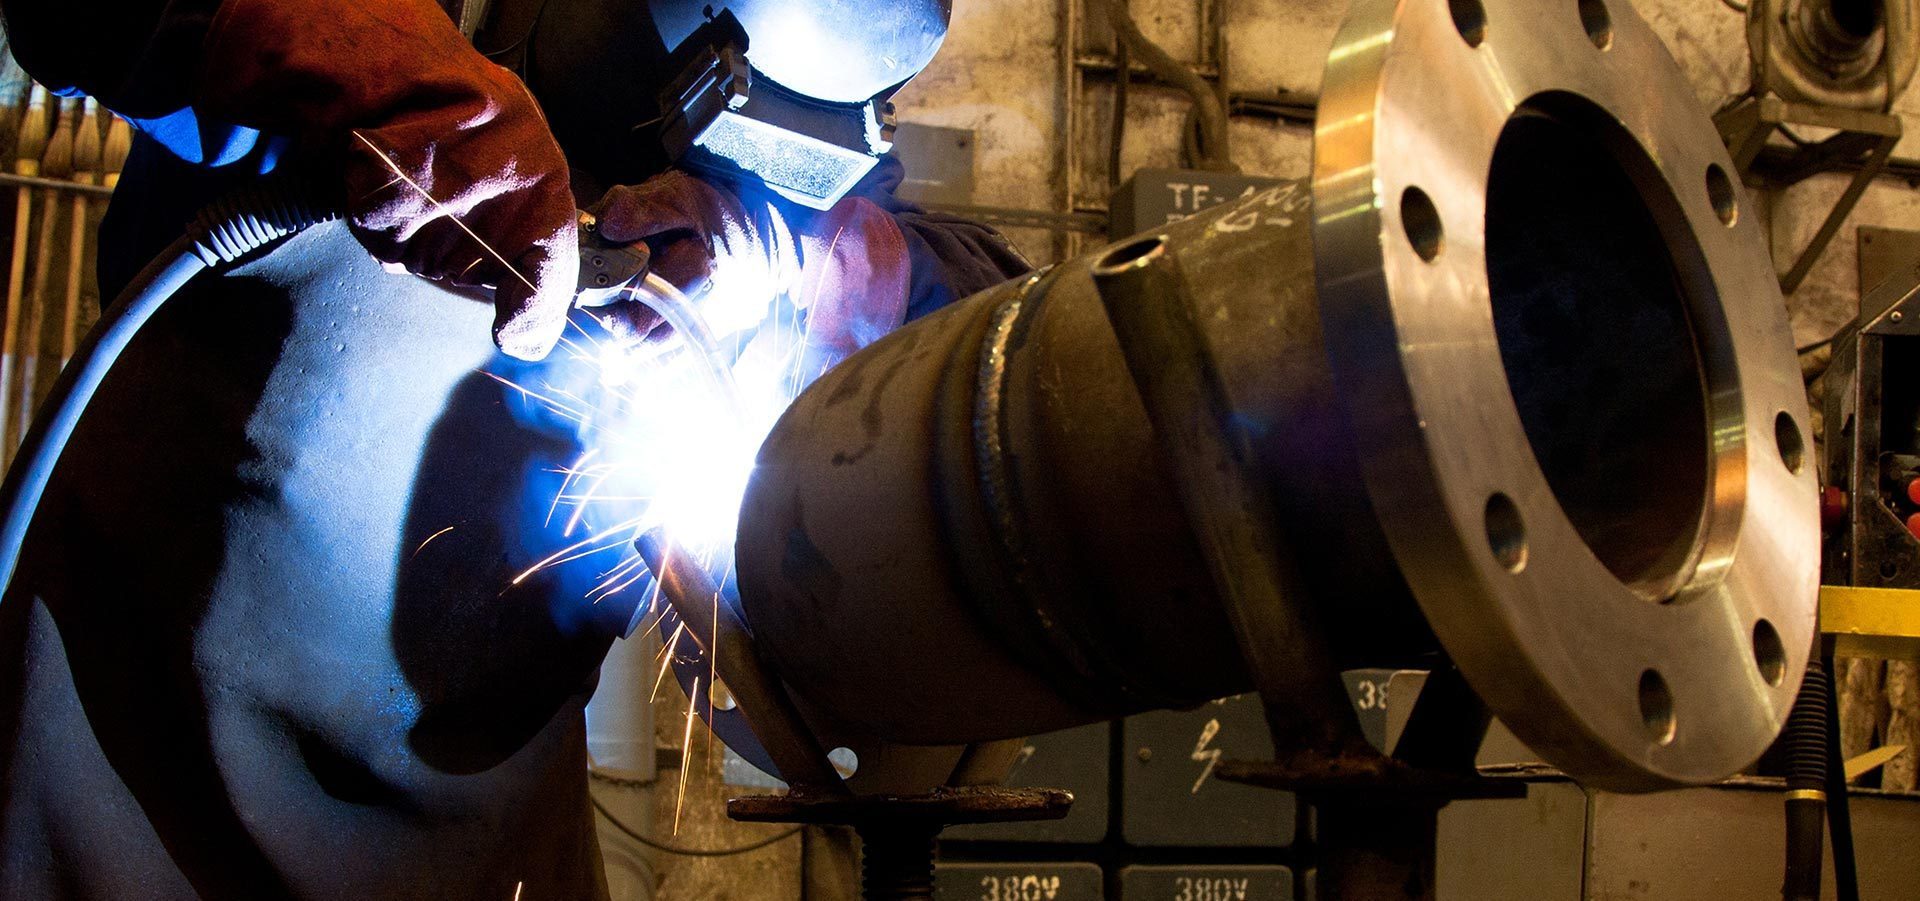 Pipe Manufacturing & Fabrication